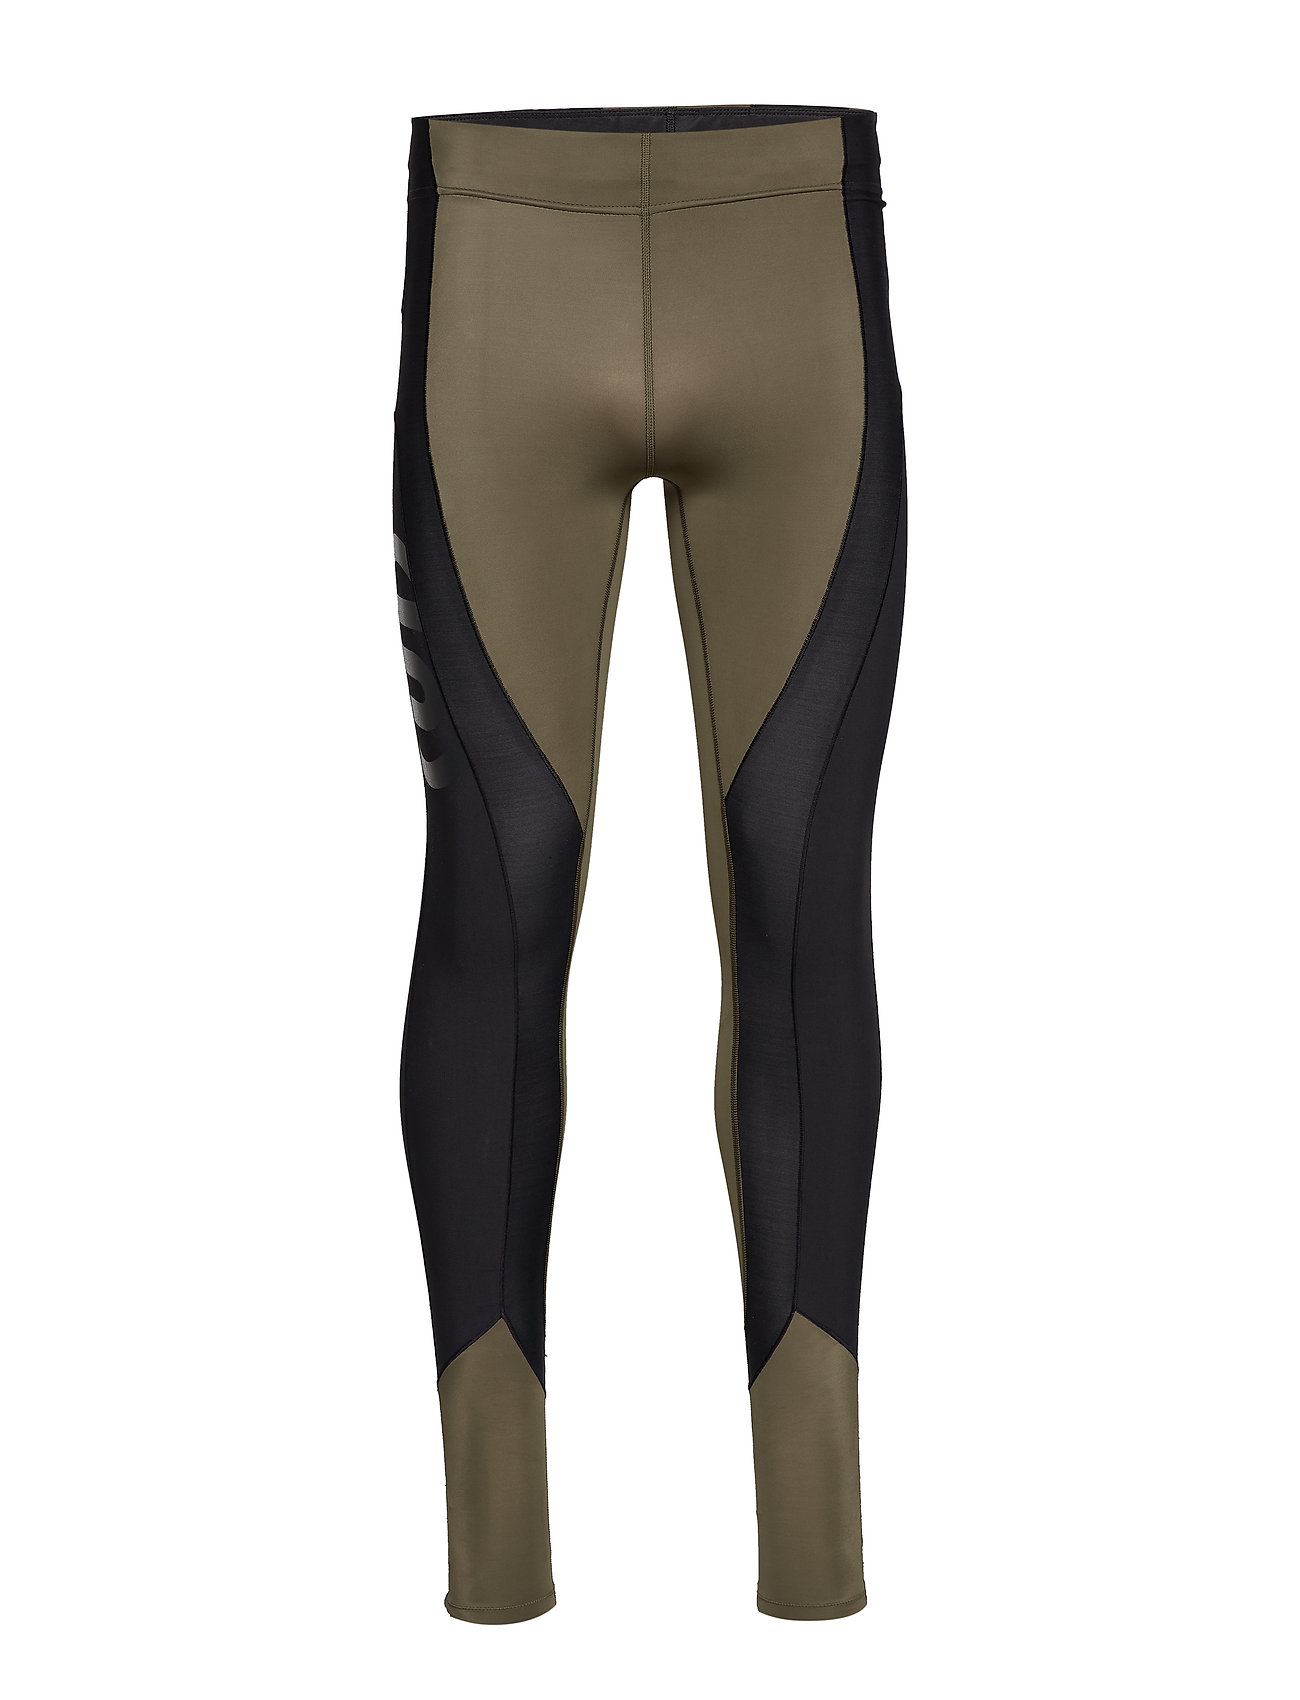 Skins DNAmic Ultimate K-Proprium X-FIT Mens Long Tights - UTILITY/BLACK